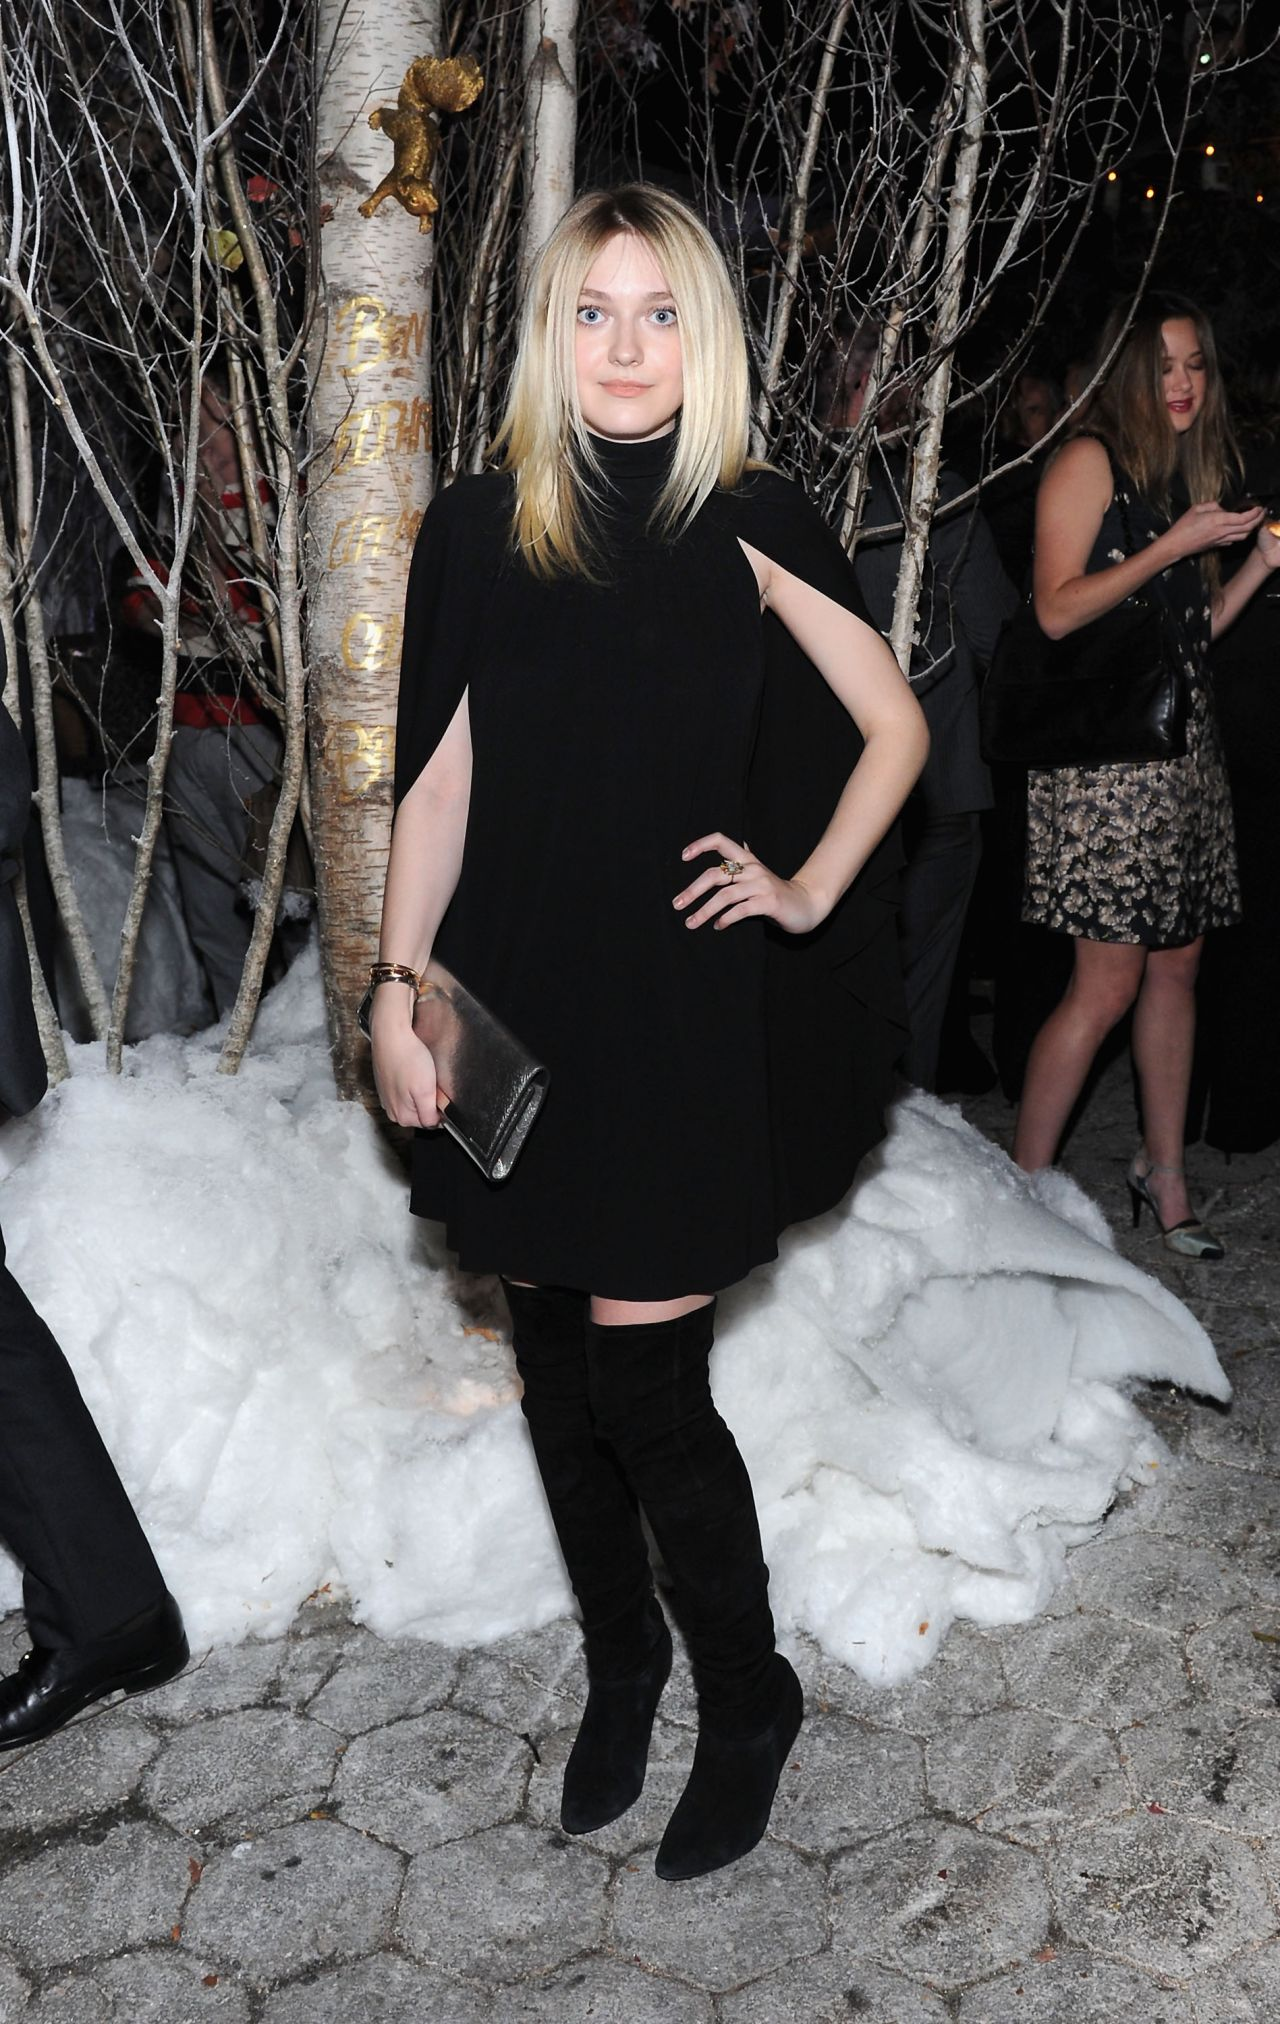 dakota-fanning-barneys-new-york-baz-dazzled-holiday-window-unveiling-dinner-in-new-york-city_2